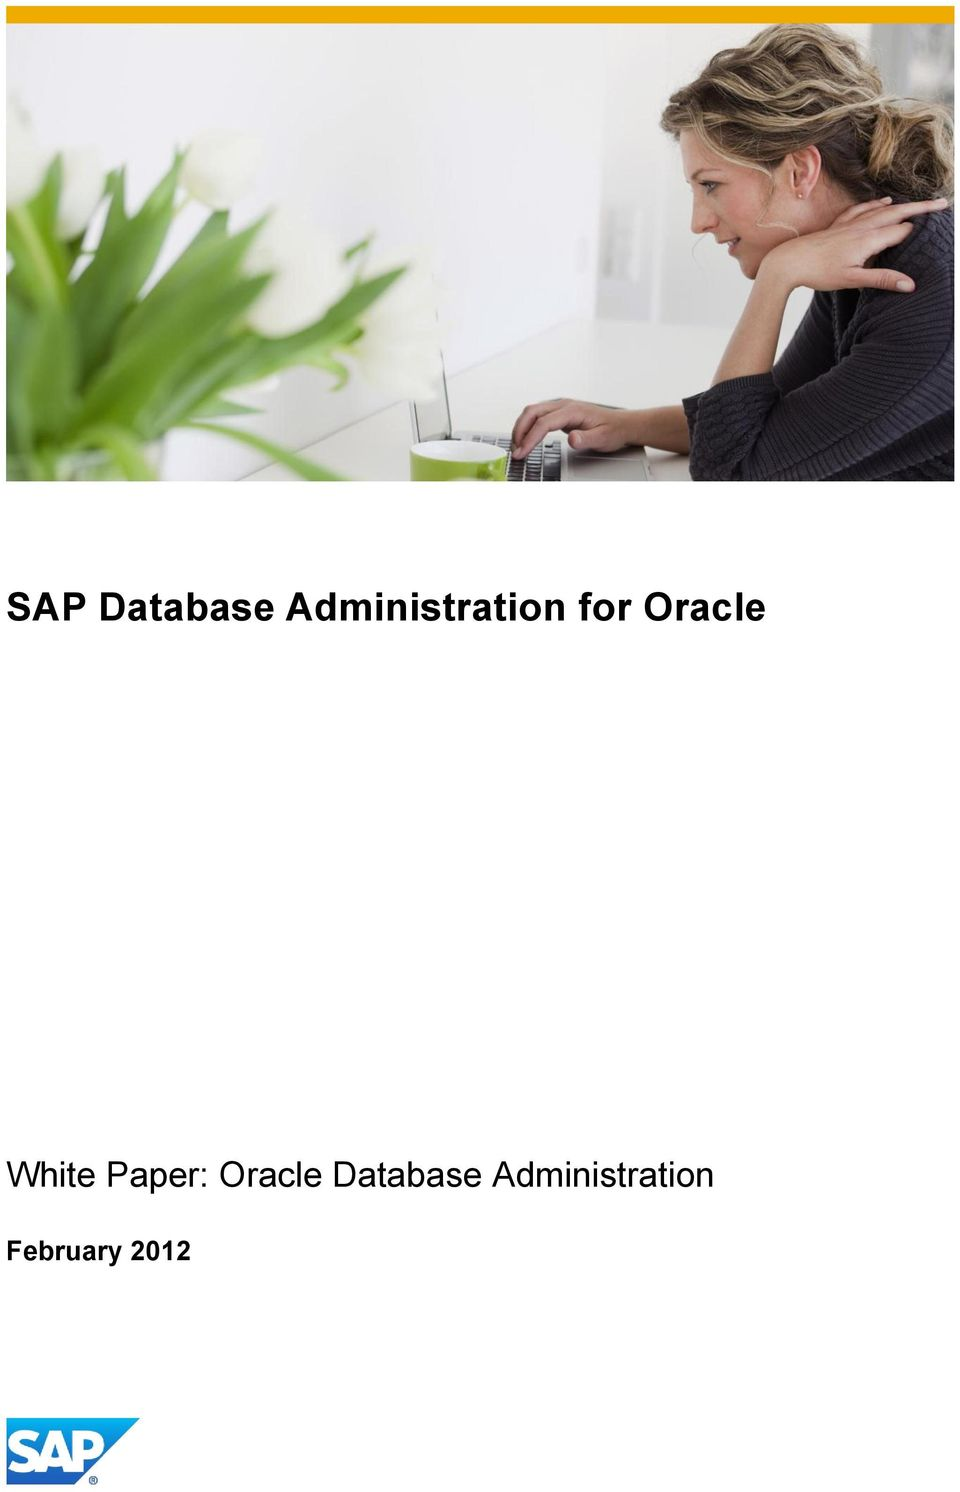 Oracle White Paper: